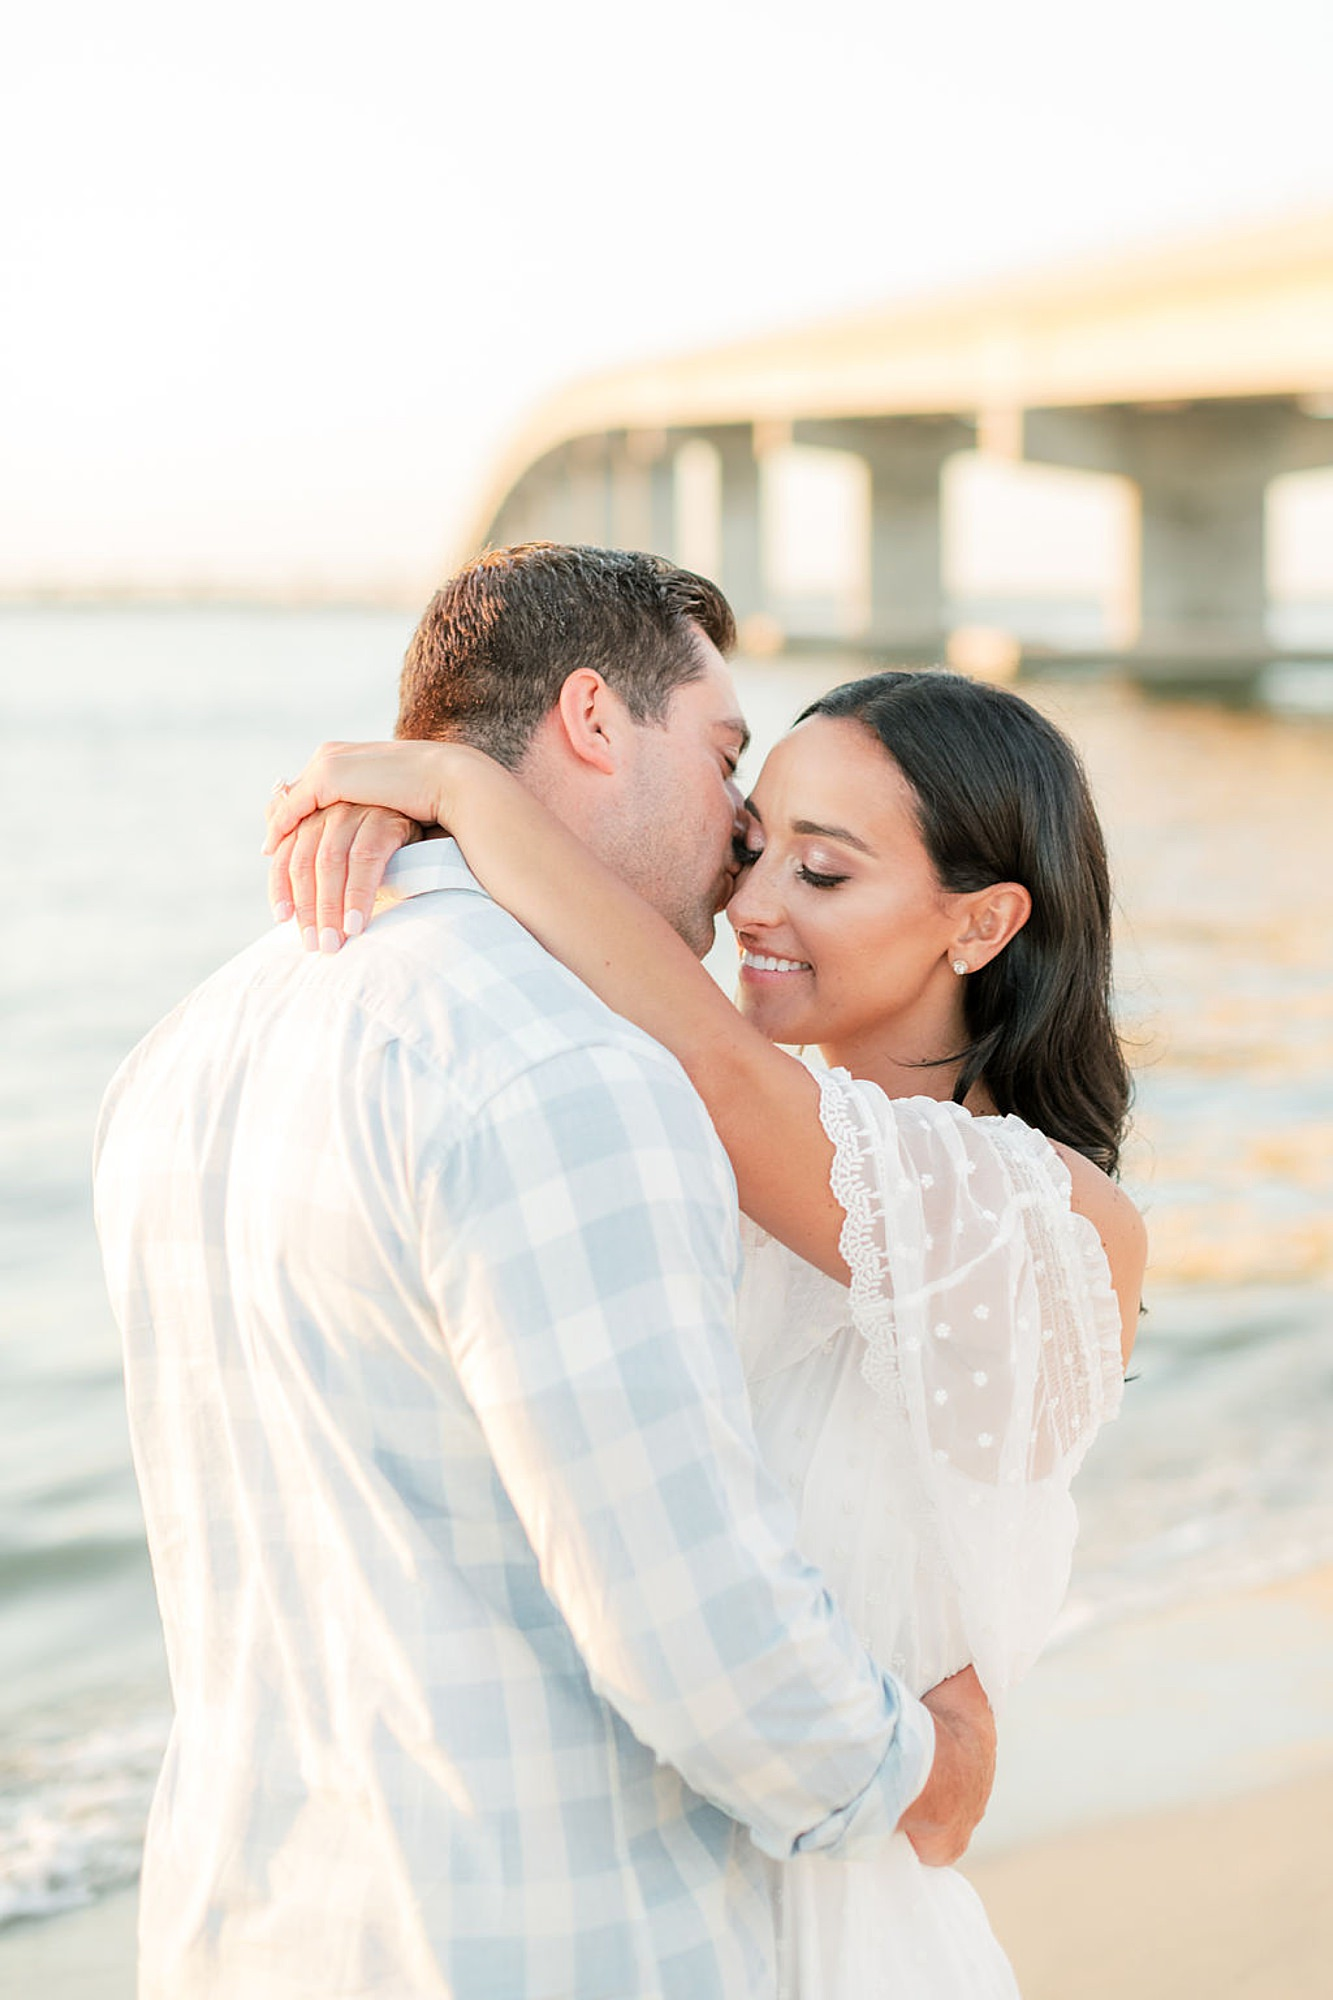 Airy and Bright Engagement Photography in Ocean City NJ by Magdalena Studios 0035